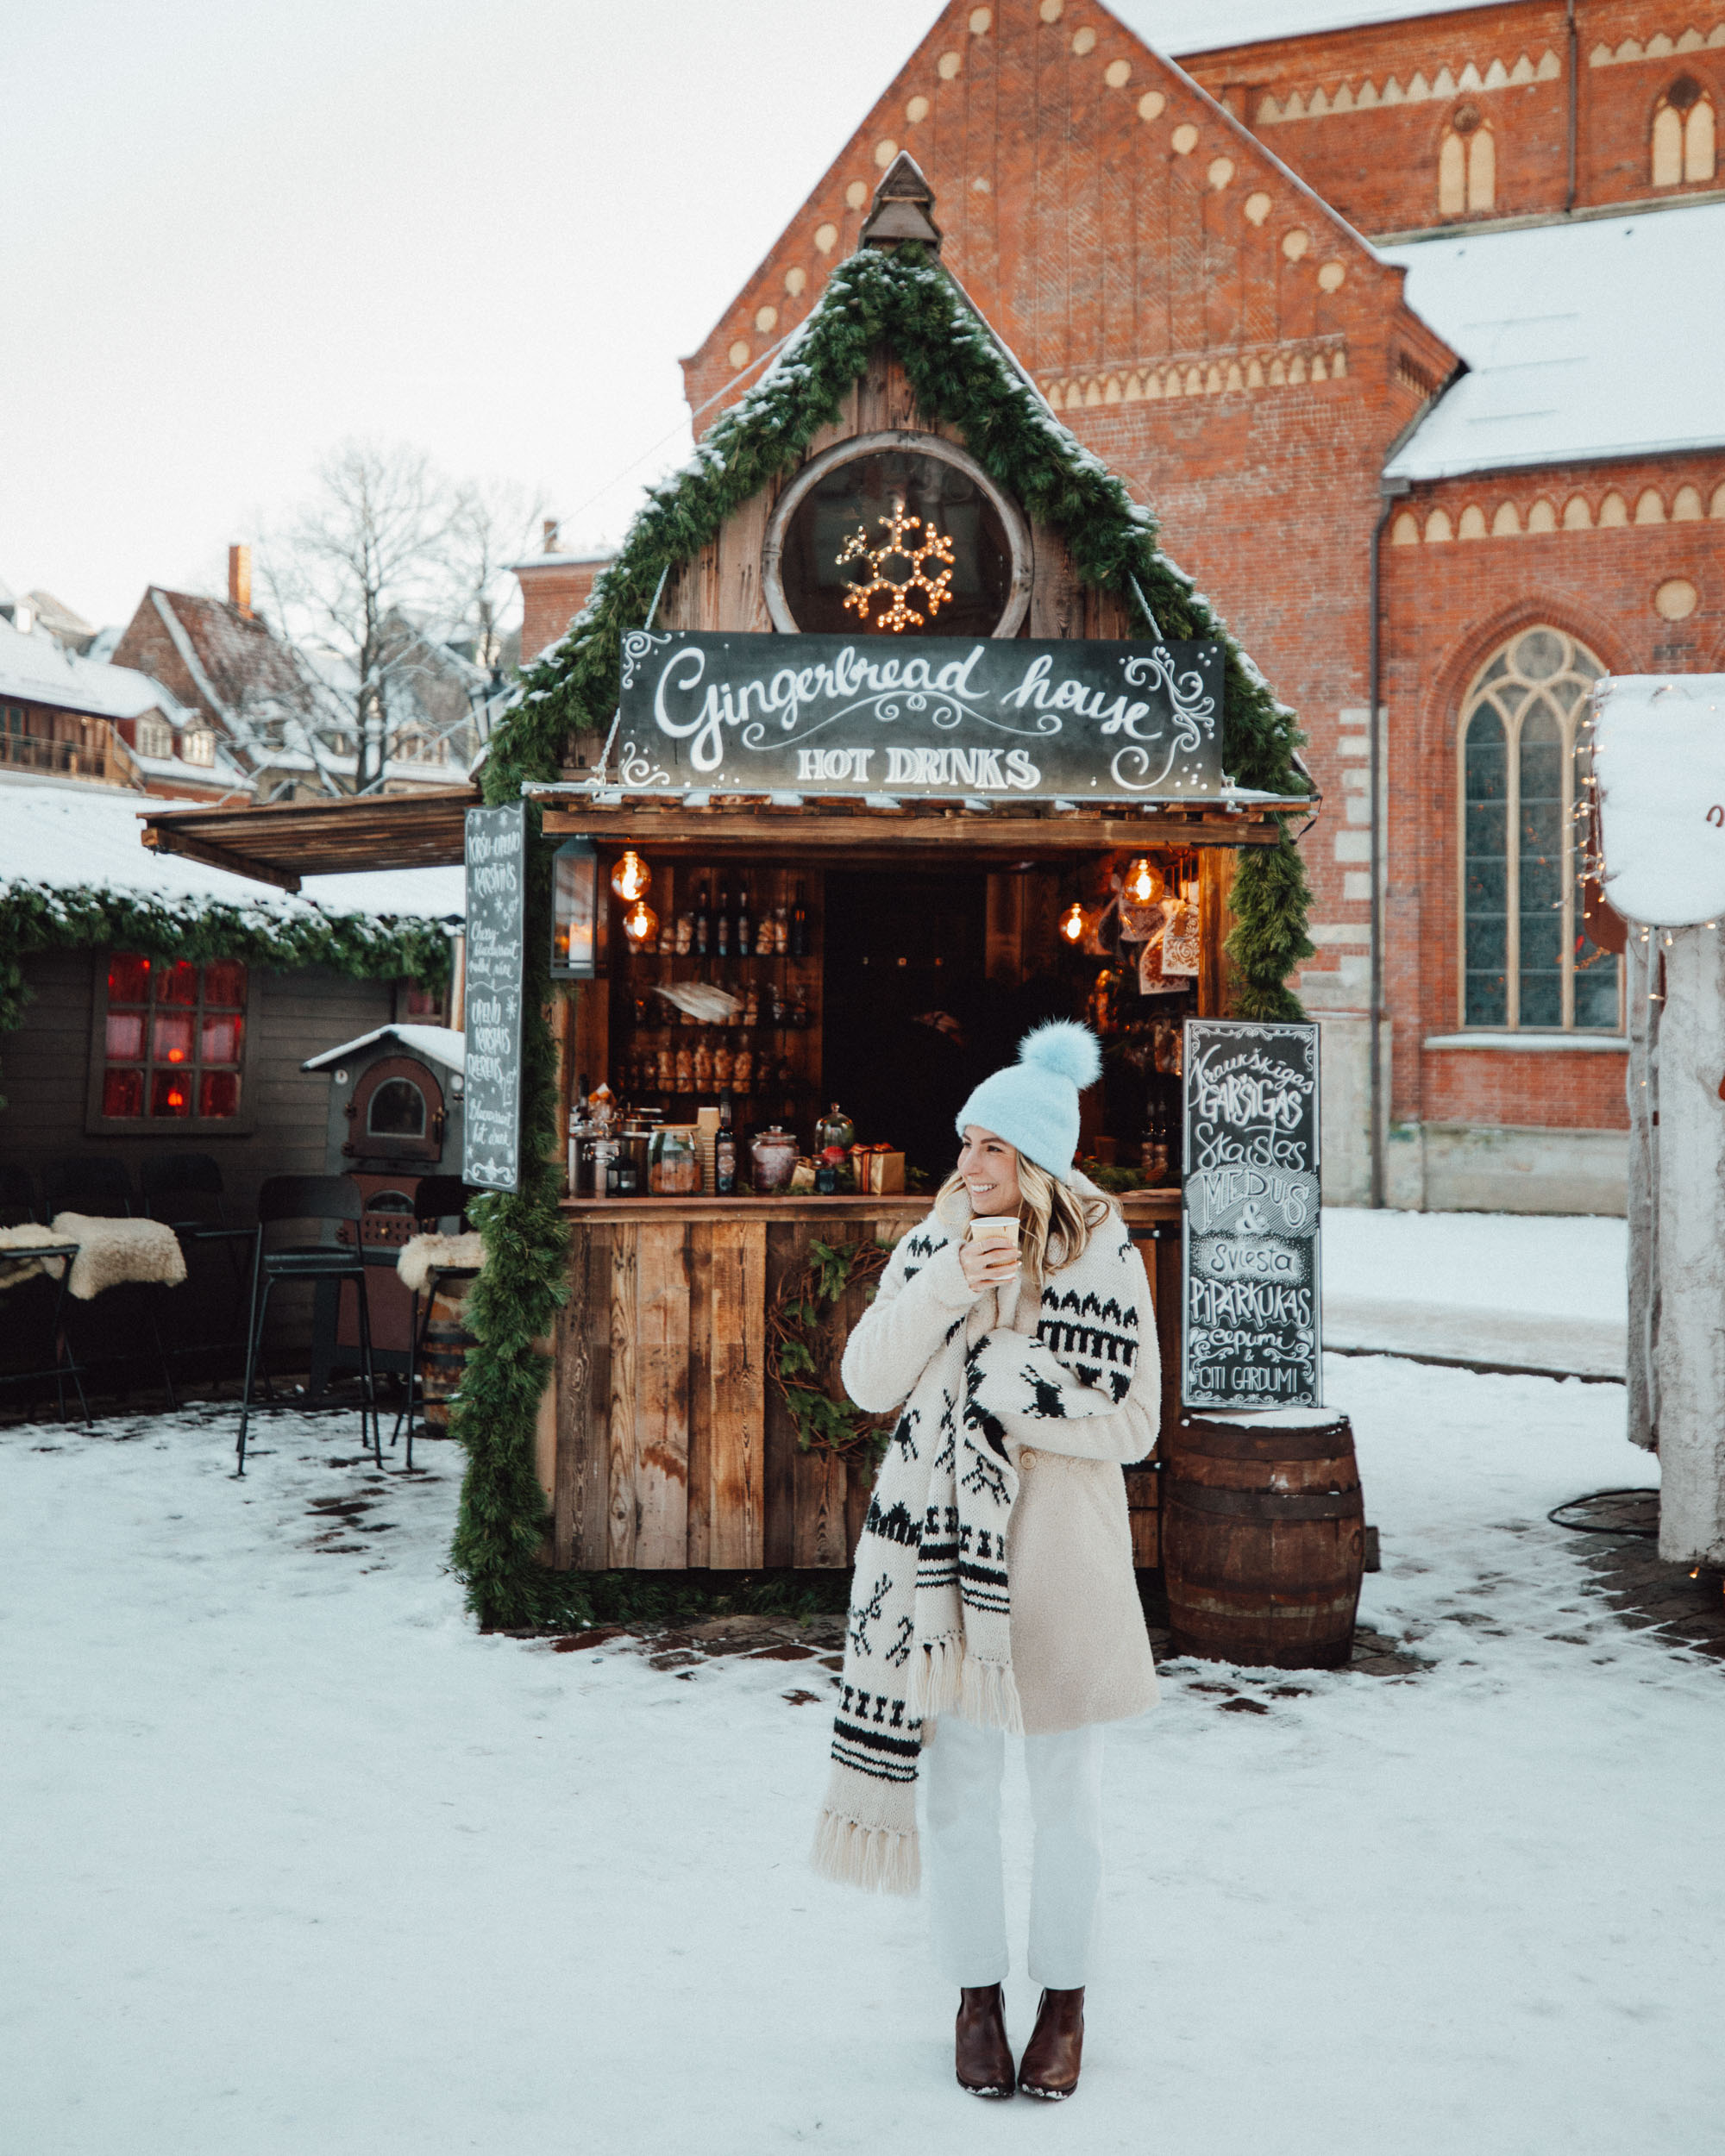 Riga Latvia Gluhwein at Christmas Market in Winter via @finduslost